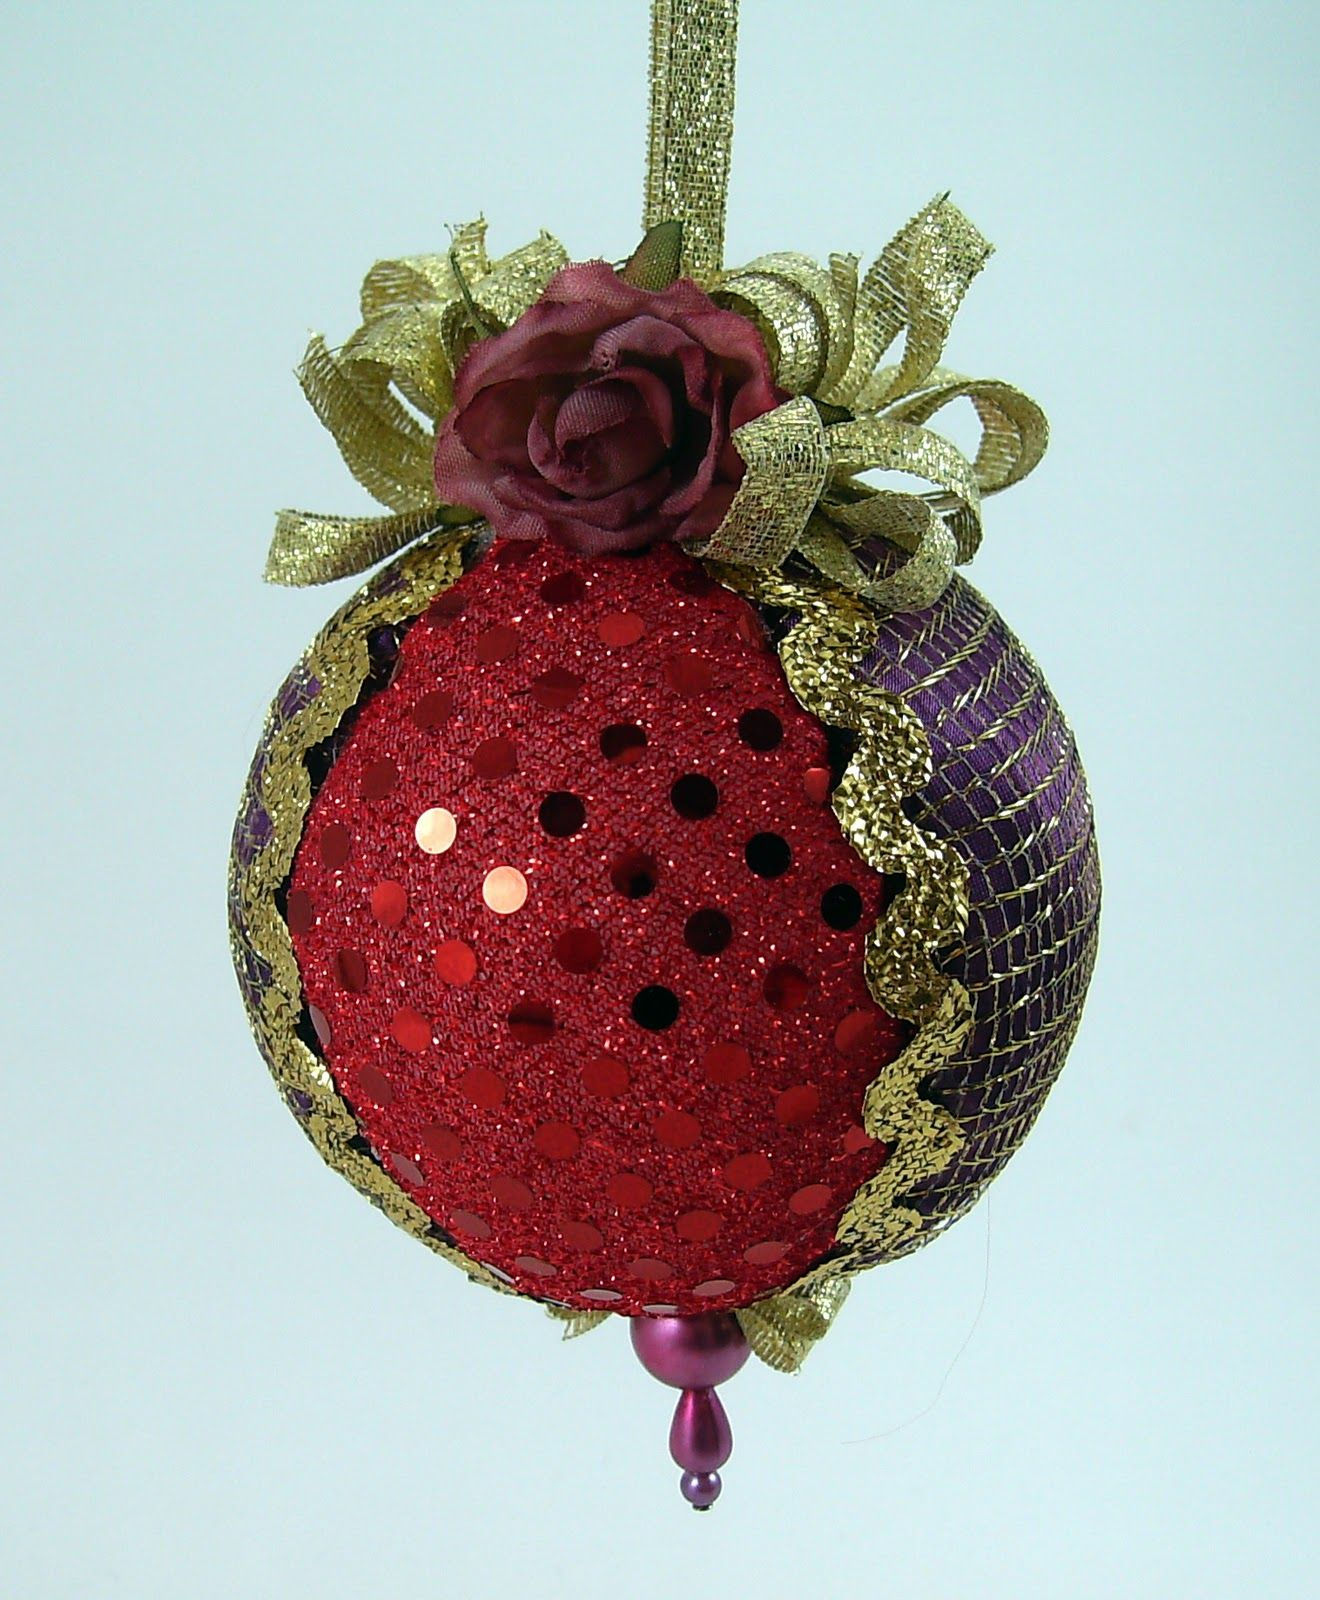 Styrofoam Ball Ornament with Fabric   Quilted Christmas Ball ... : quilted styrofoam ball ornament - Adamdwight.com